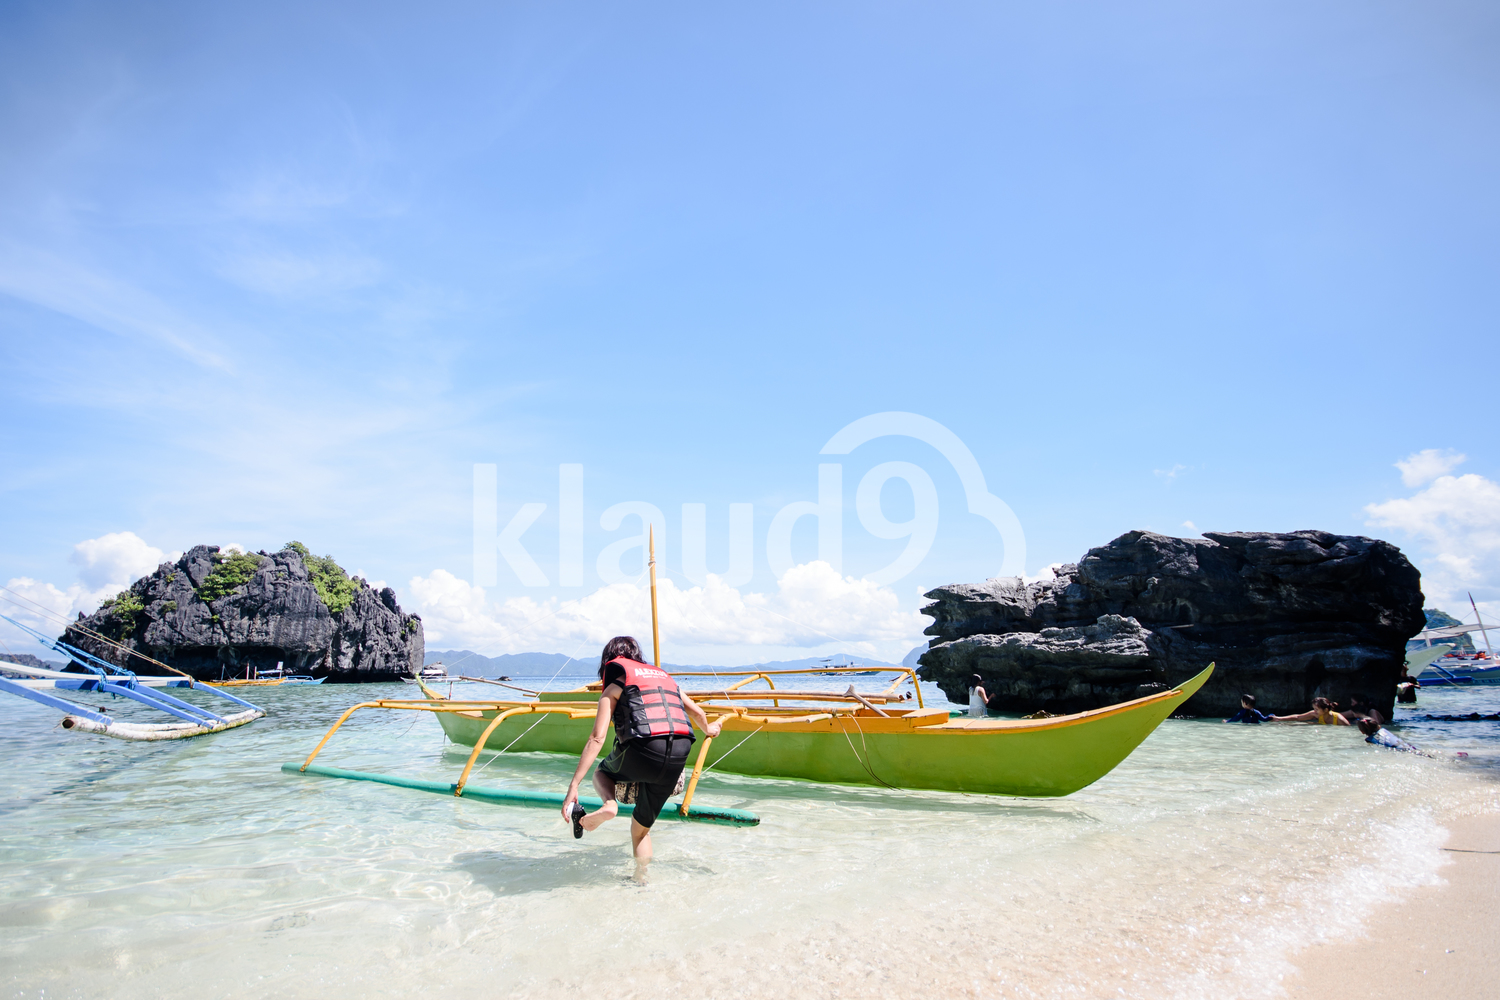 Paradise island and crystal clear water of El Nido, Palawan, Philippines